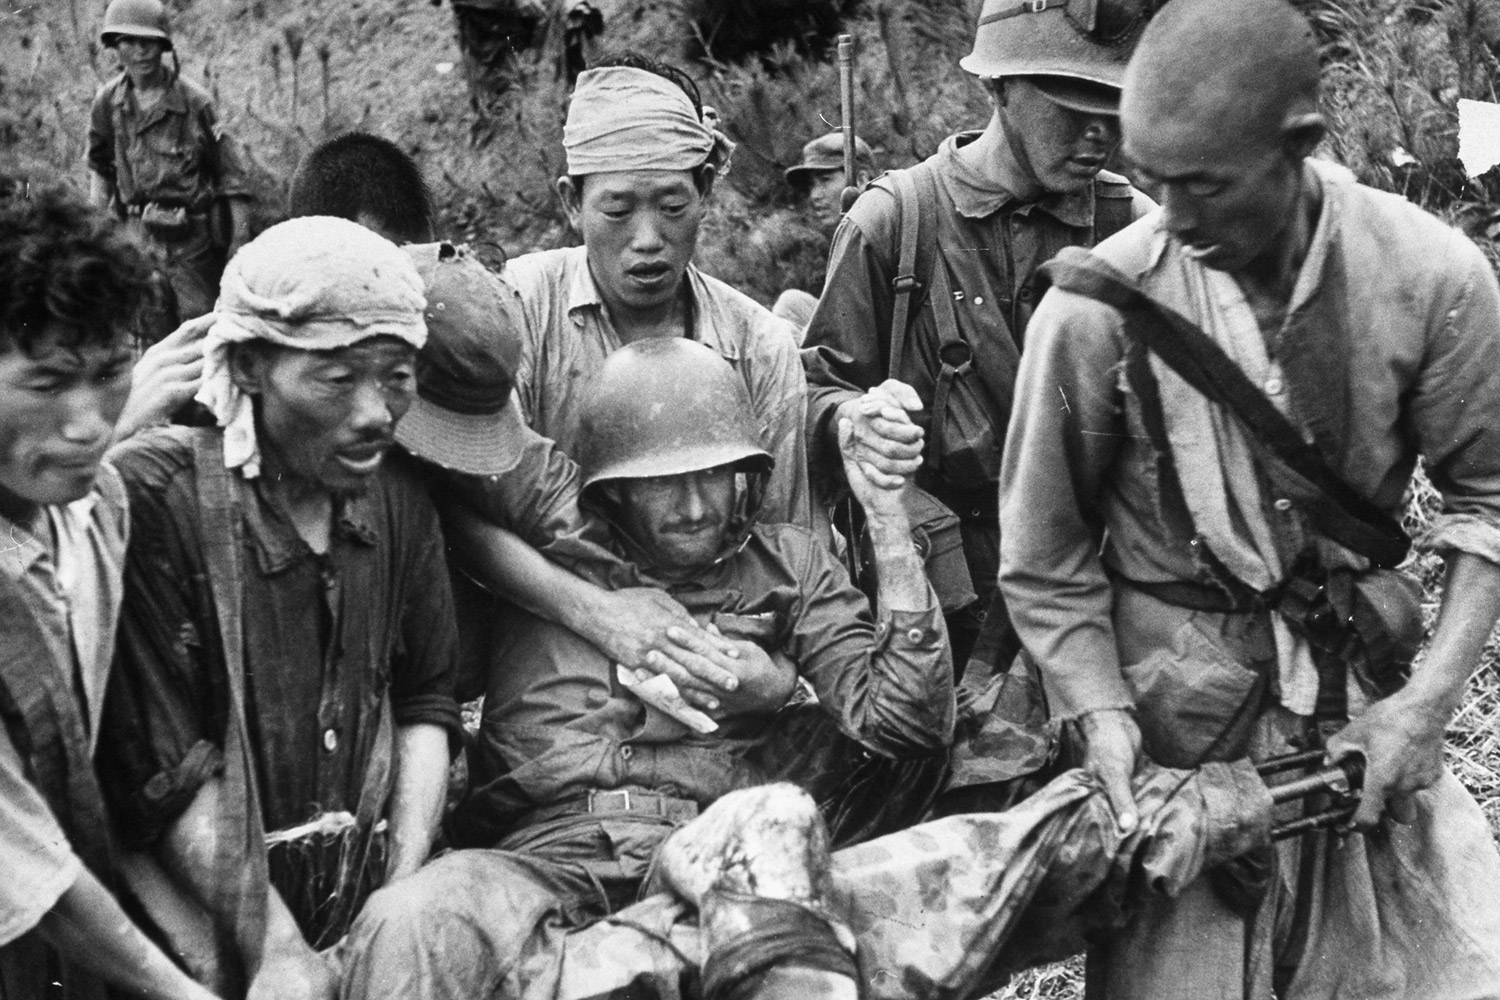 Korean medical aides carrying a wounded U.S. Marine from the 5th Marine Regiment from battlefield during UN forces' fight against North Koreans along Naktong River; the Marines fought to hold the Pusan perimeter at the start of Korean War in August 1950.